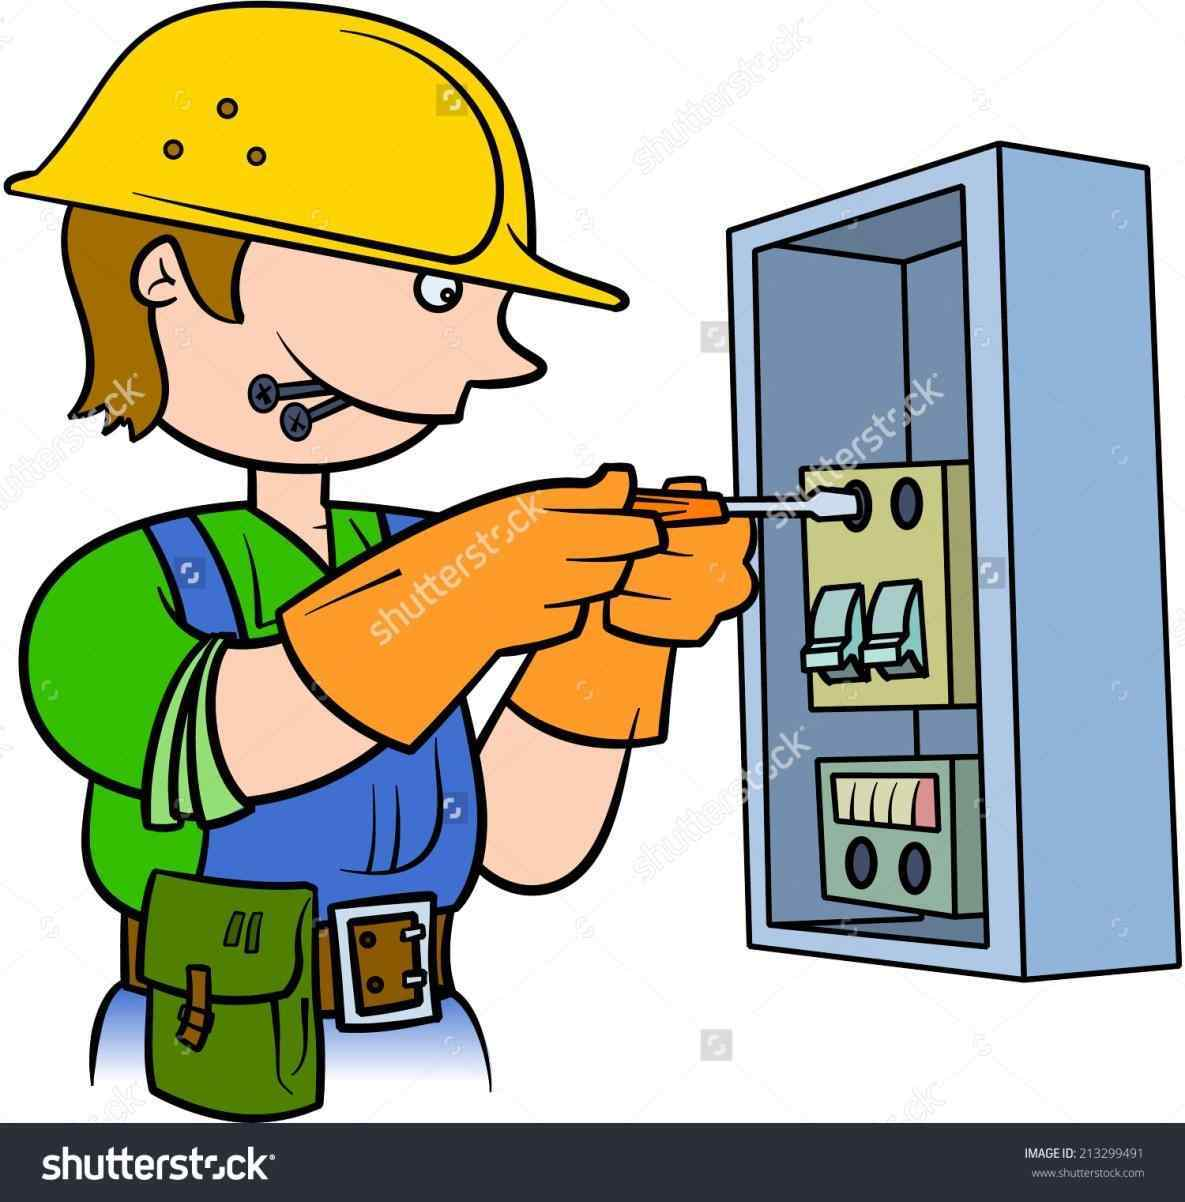 Electrician clipart. Silhouette at getdrawings com